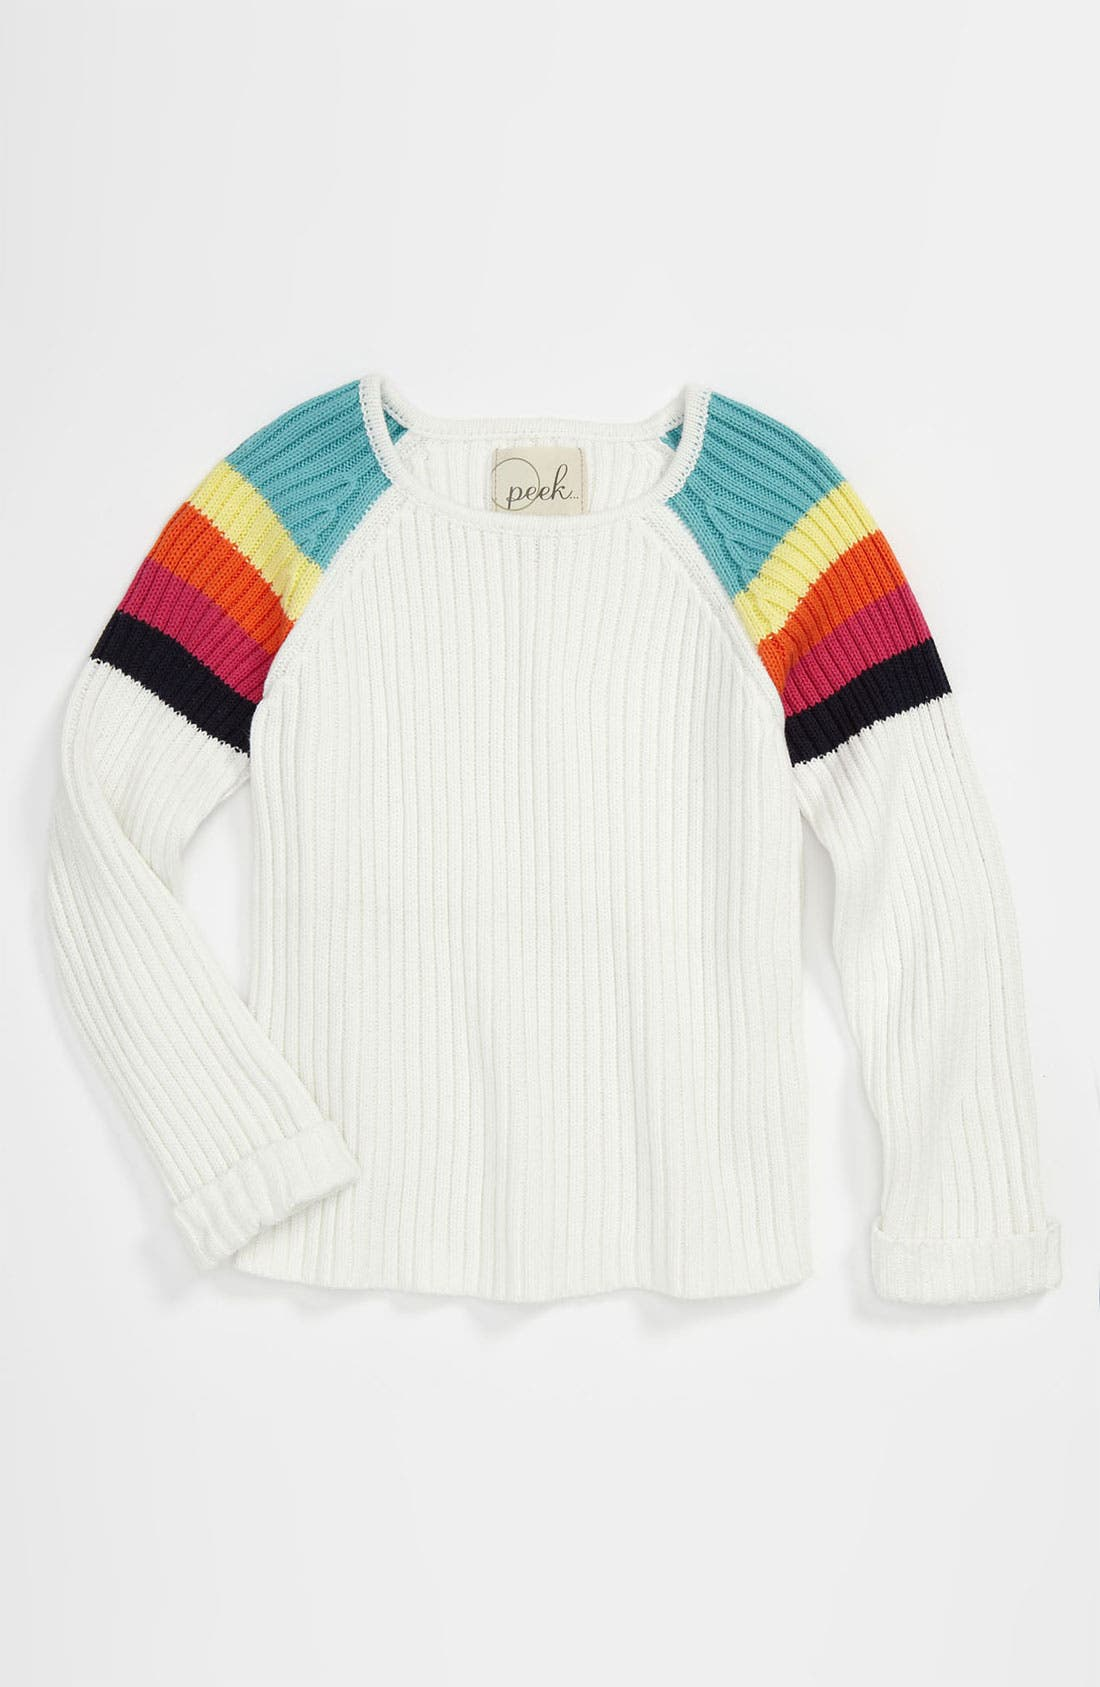 Alternate Image 1 Selected - Peek 'Rainbow' Sweater (Toddler, Little Girls & Big Girls)